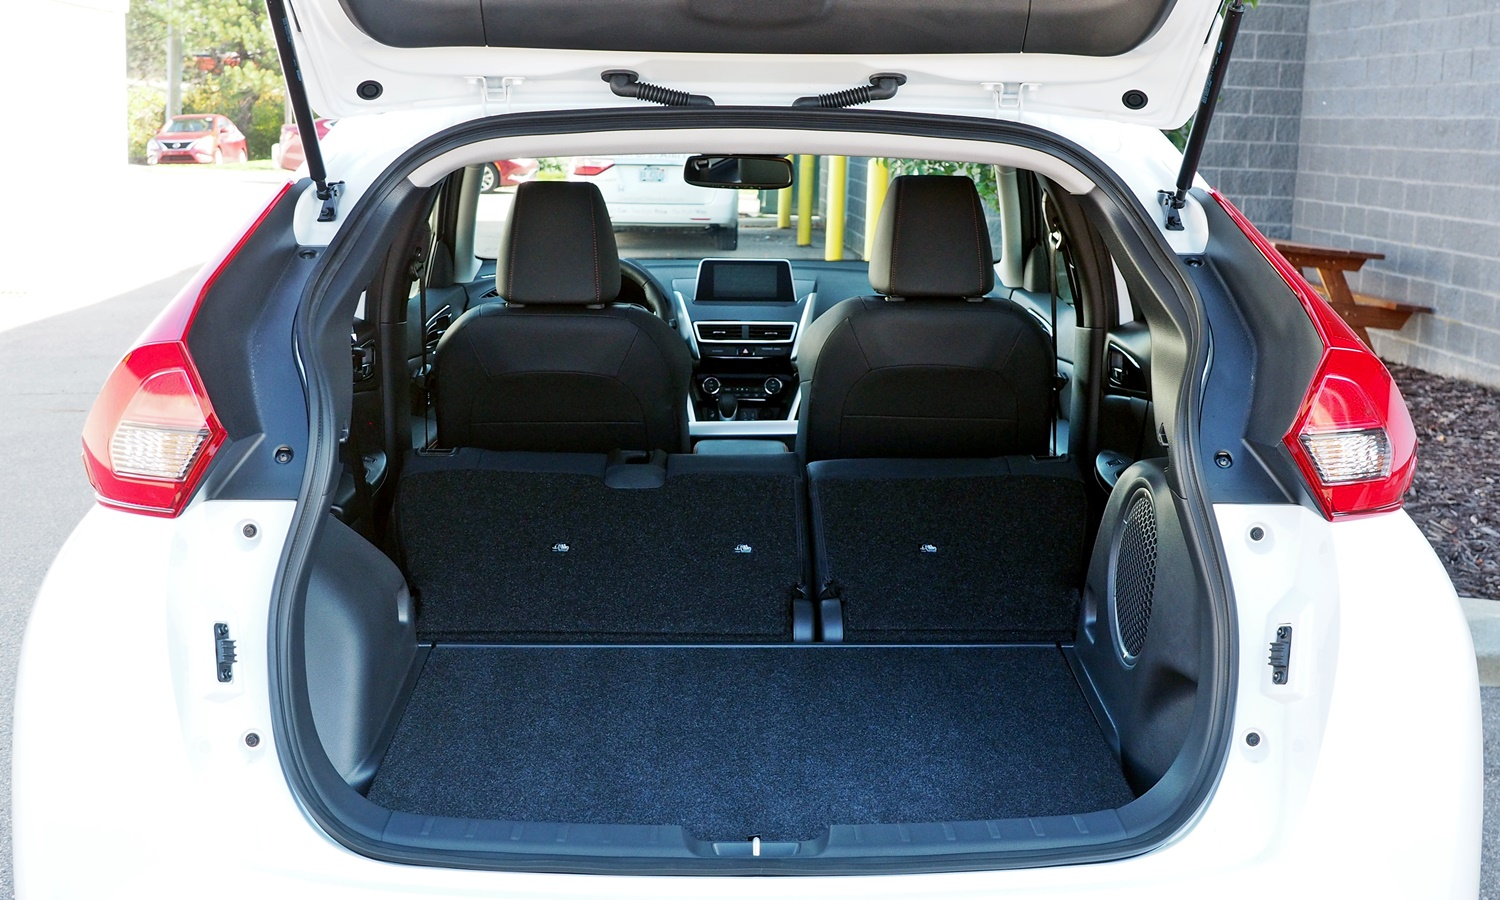 Mitsubishi Eclipse Cross Photos: 2018 Eclipse Cross cargo area with seats folded